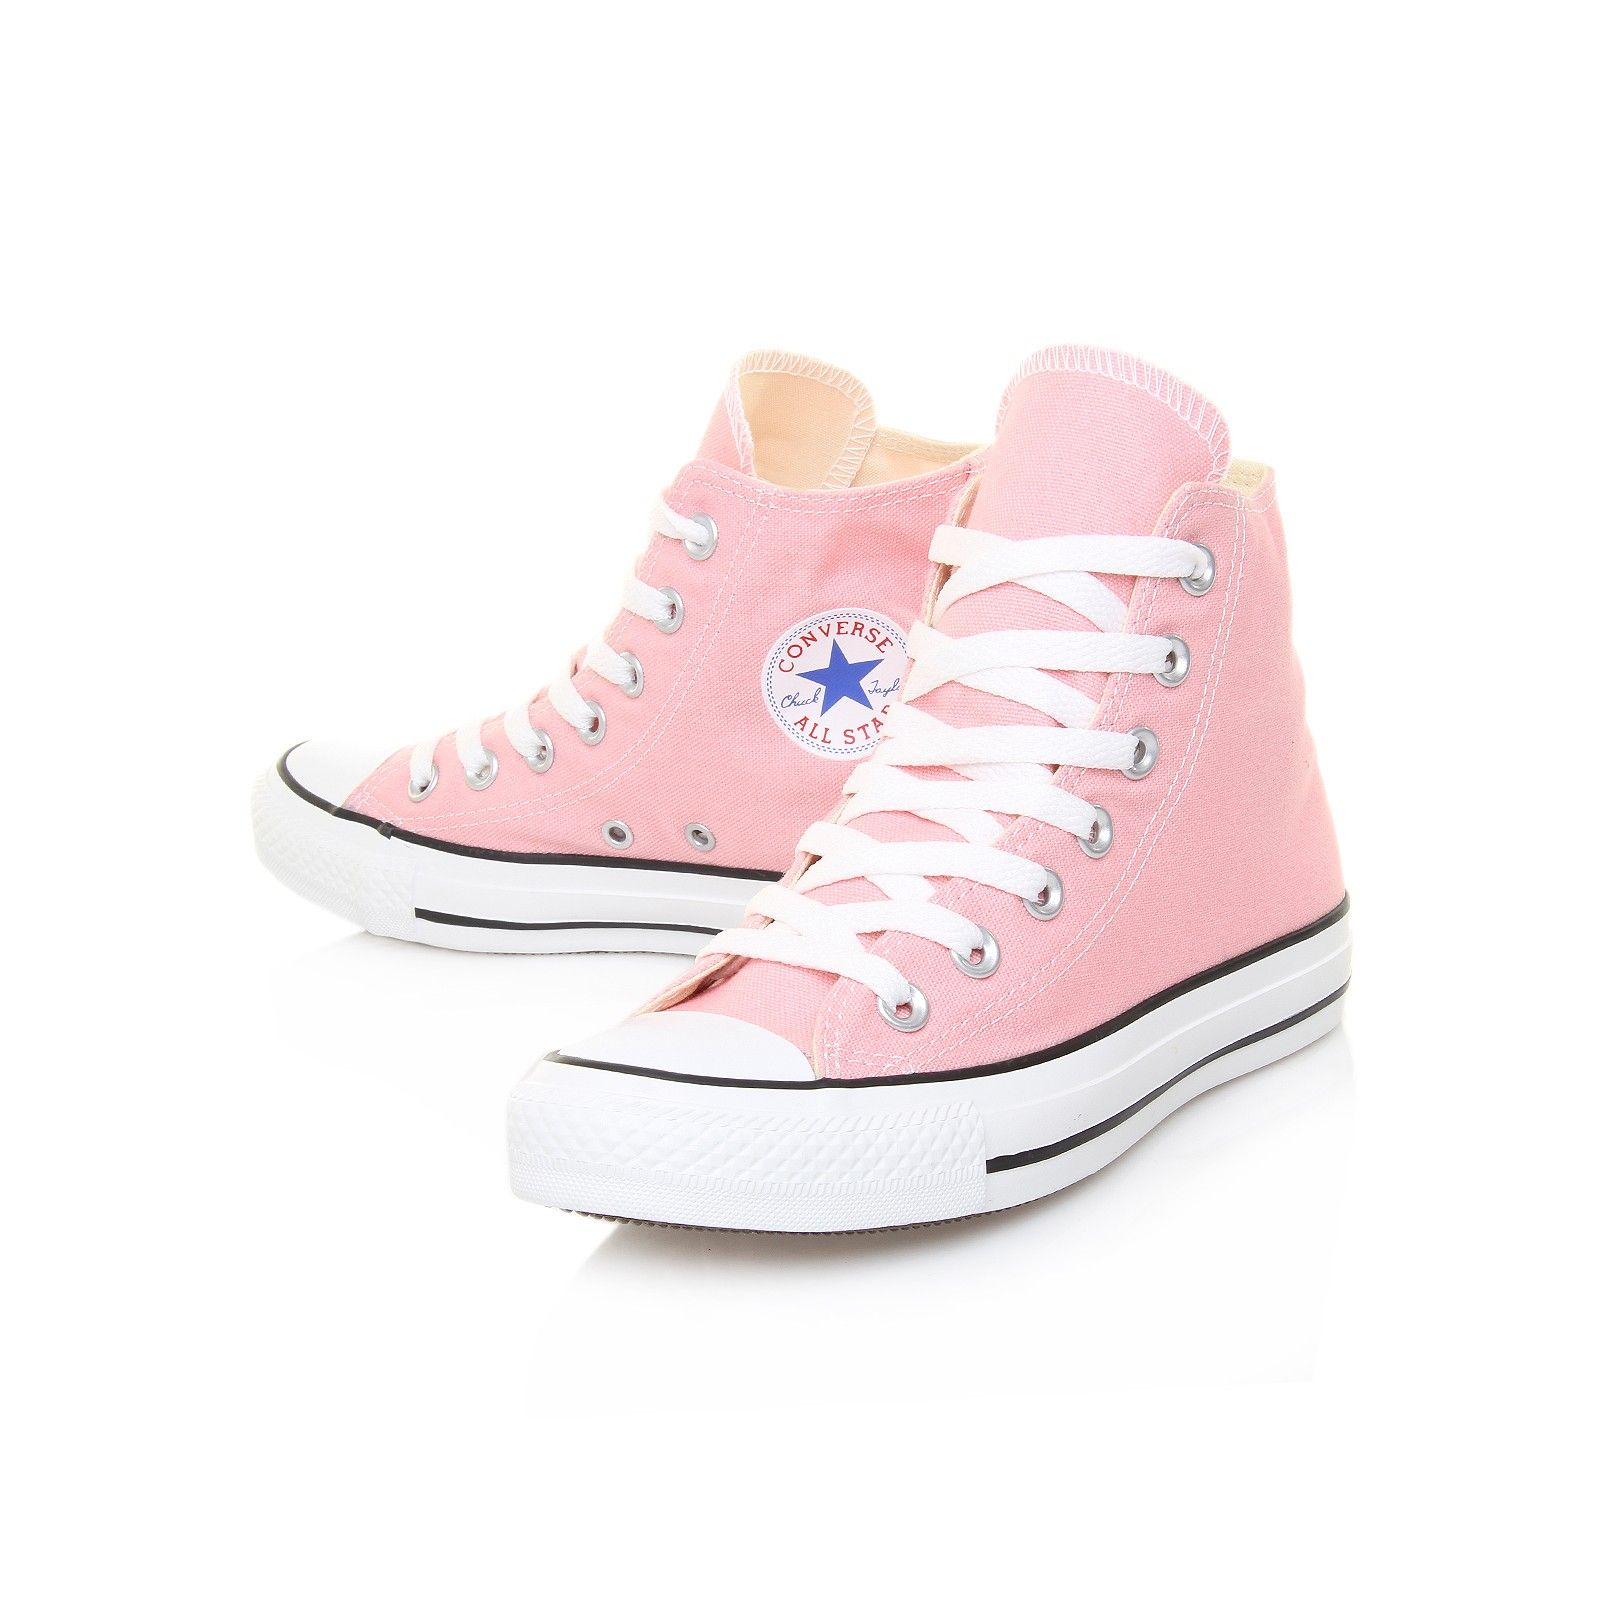 CHUCK TAYLOR ALL STAR HI pale pink CONVERSE shoe WOMENS